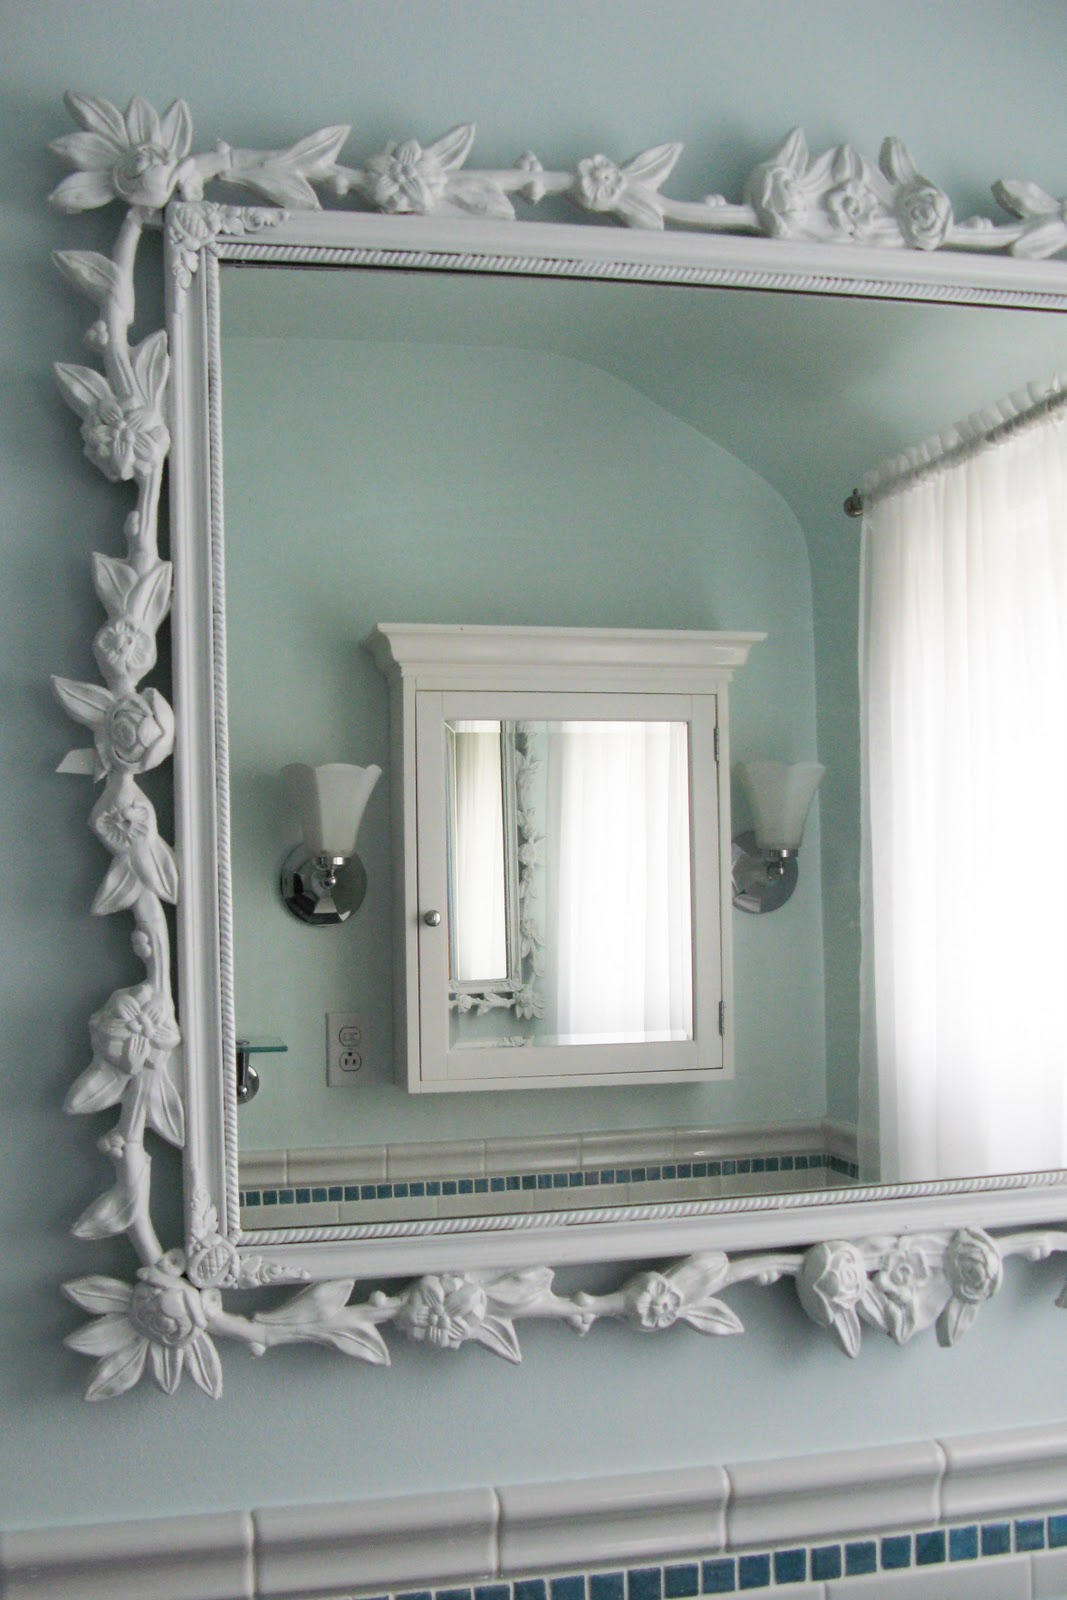 decorative bathroom mirrors decorative frame for bathroom mirror ideas 3403 house 12643